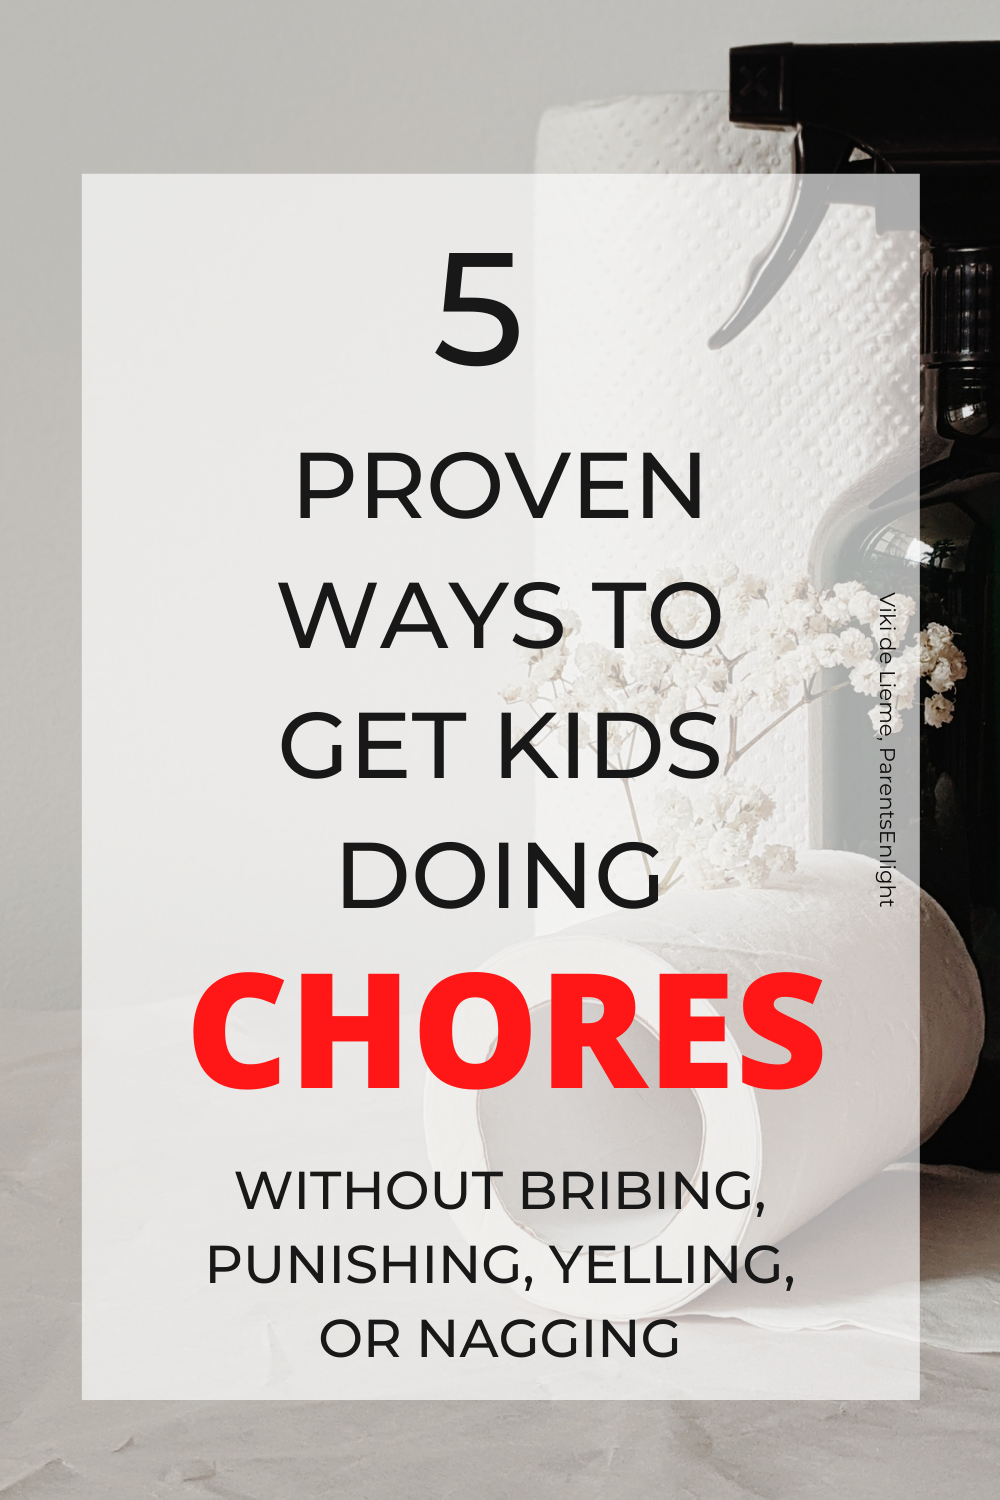 I know most of you won't believe me if I said that my kids do their chores happily, but that's the case and that's due to the approach I've taken from day one. Here it is #kidsdoingchores #howtohelpyourchilddochores #chores #positiveparenting #mindfulparenting #peacefulparenting